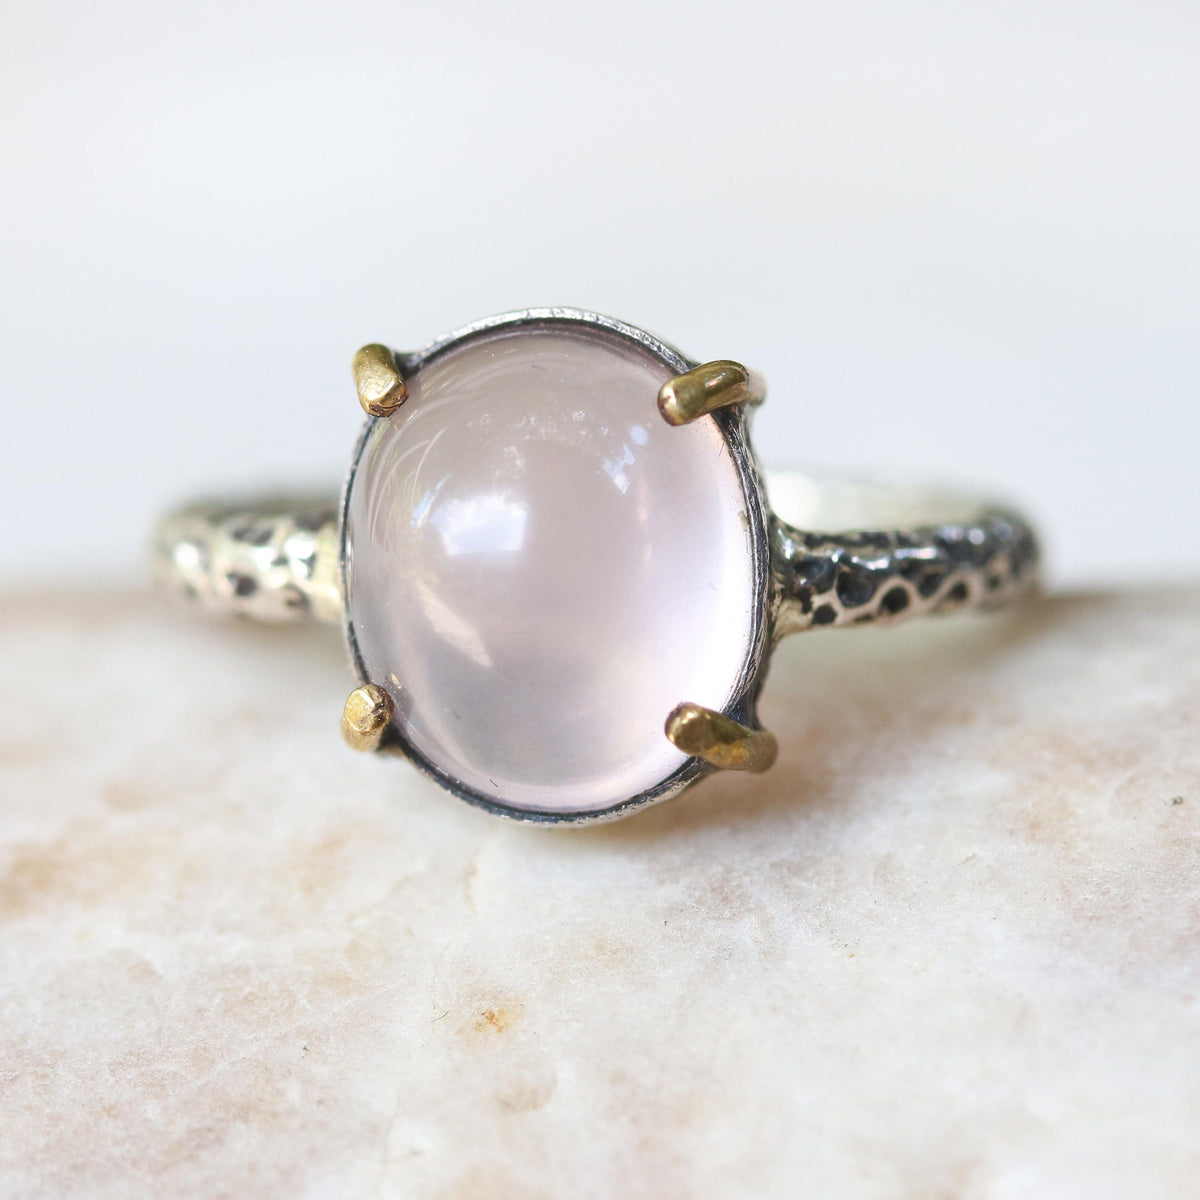 Rose quartz cocktail ring with silver heavily textured setting and brass accent prongs